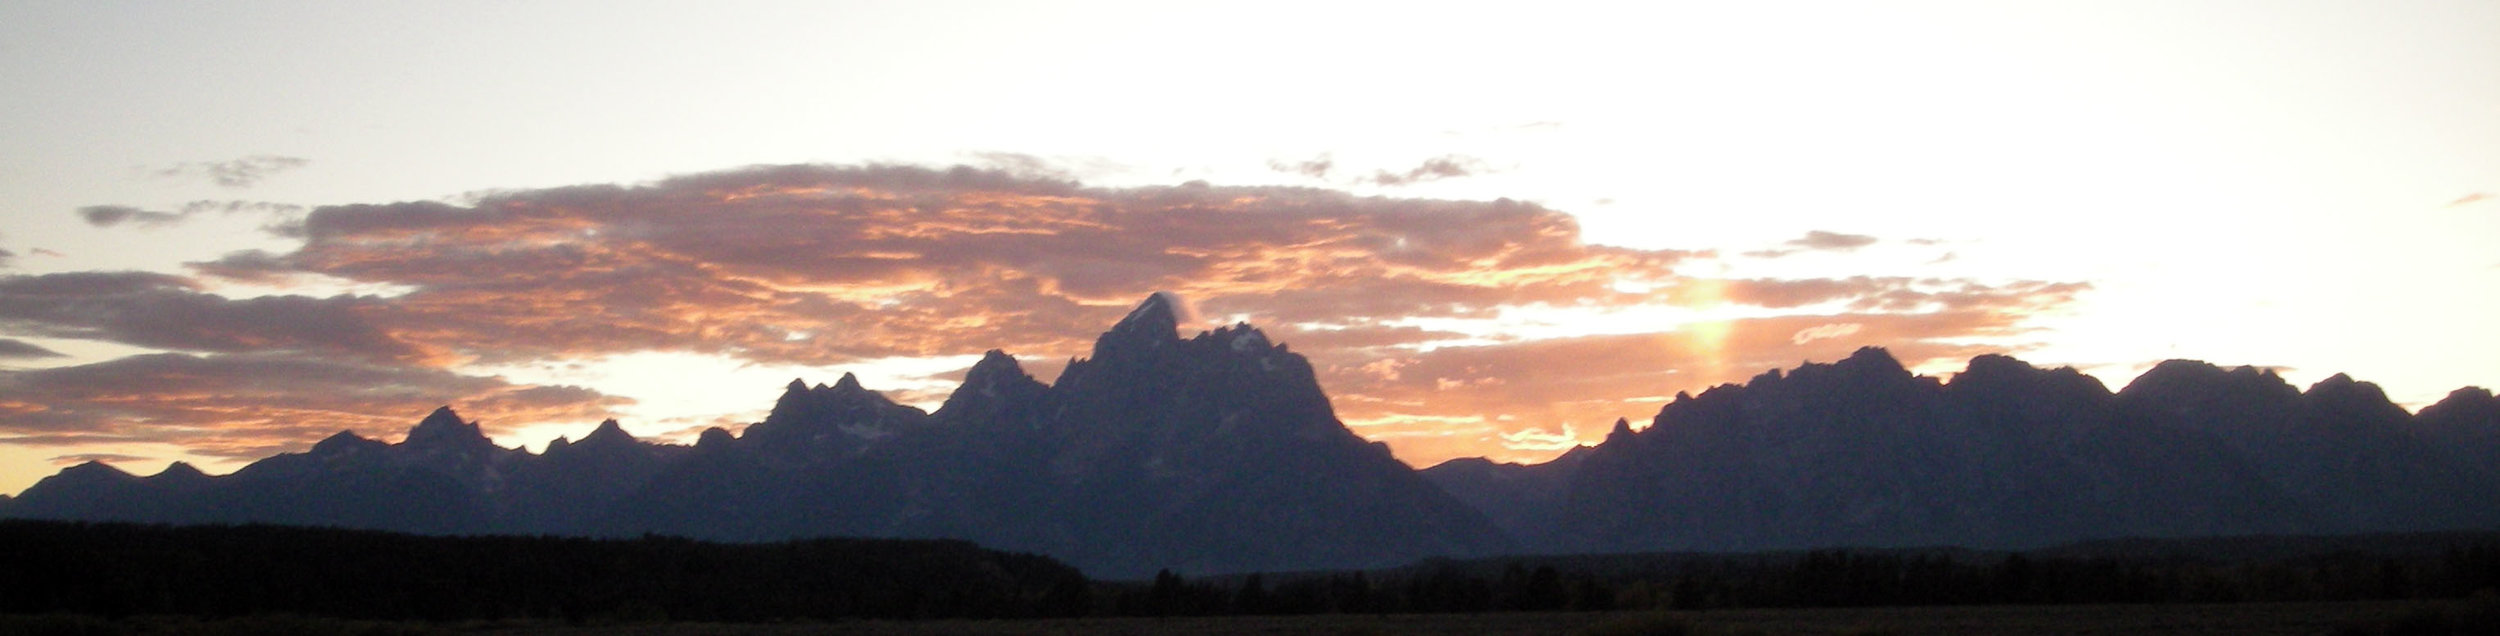 Grand Tetons National Park sunset.jpg